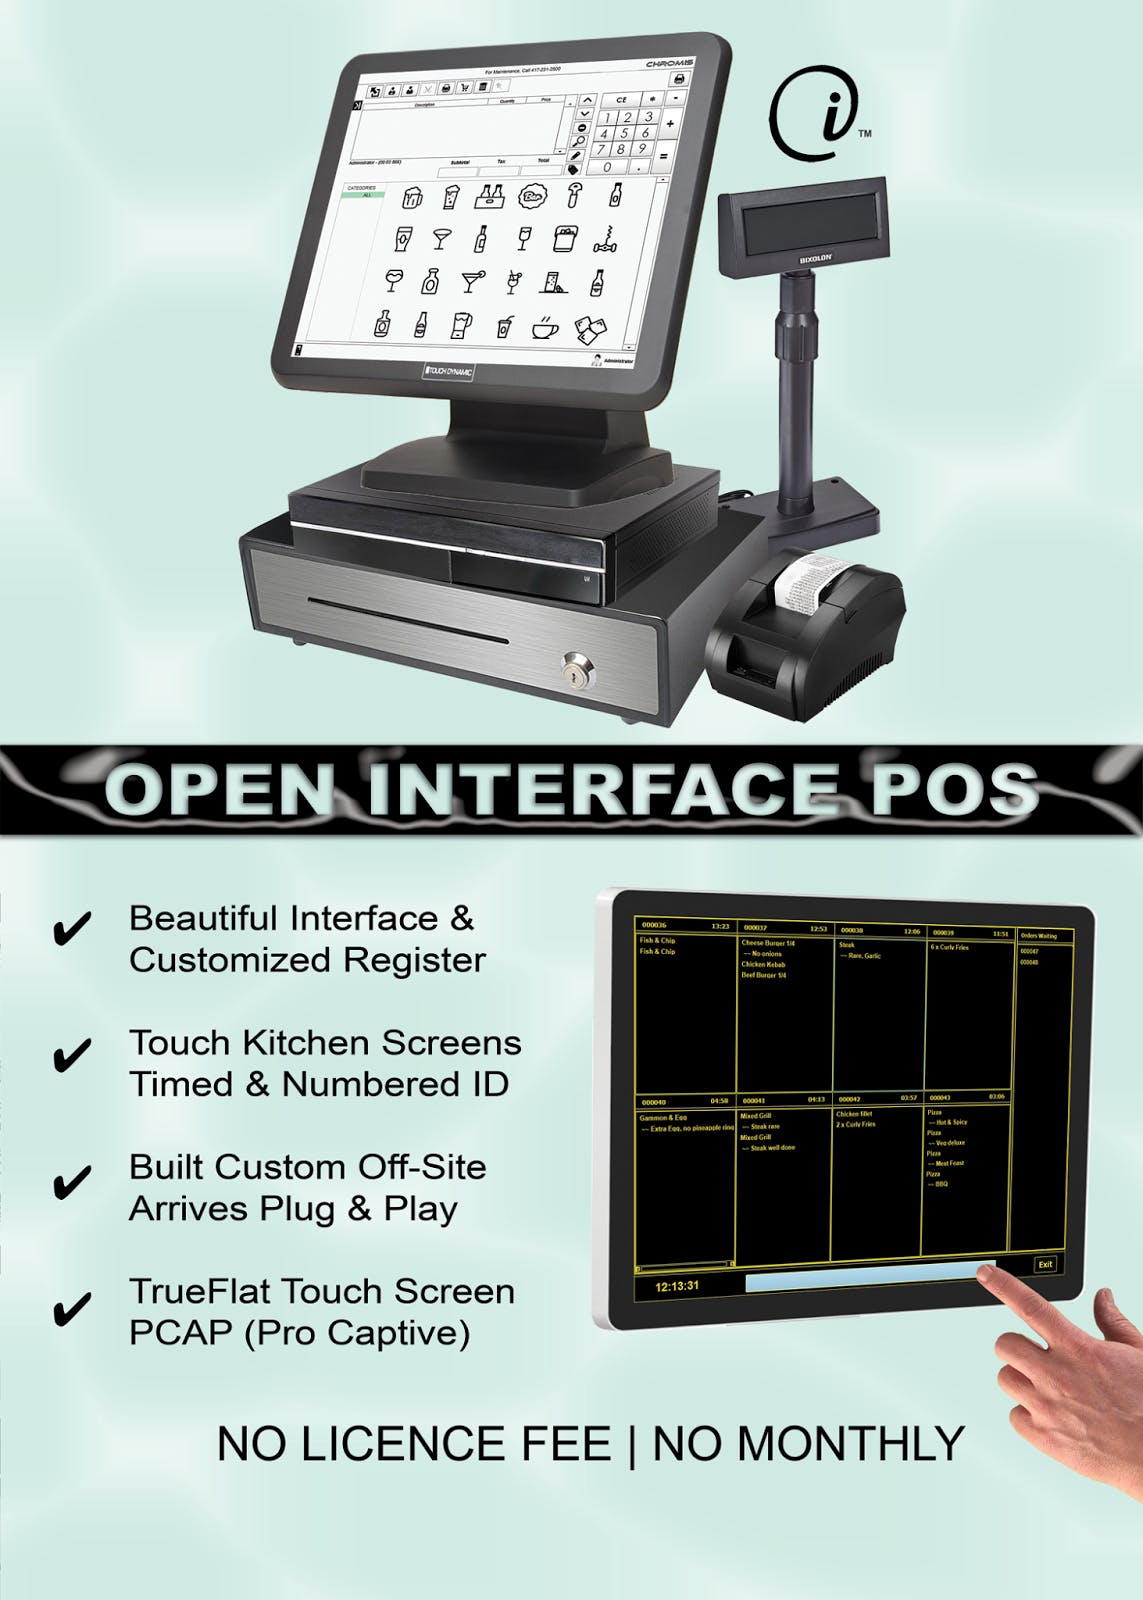 Open Interface POS, MADE IN THE USA - Open Interface POS - sold by Open Interface INC